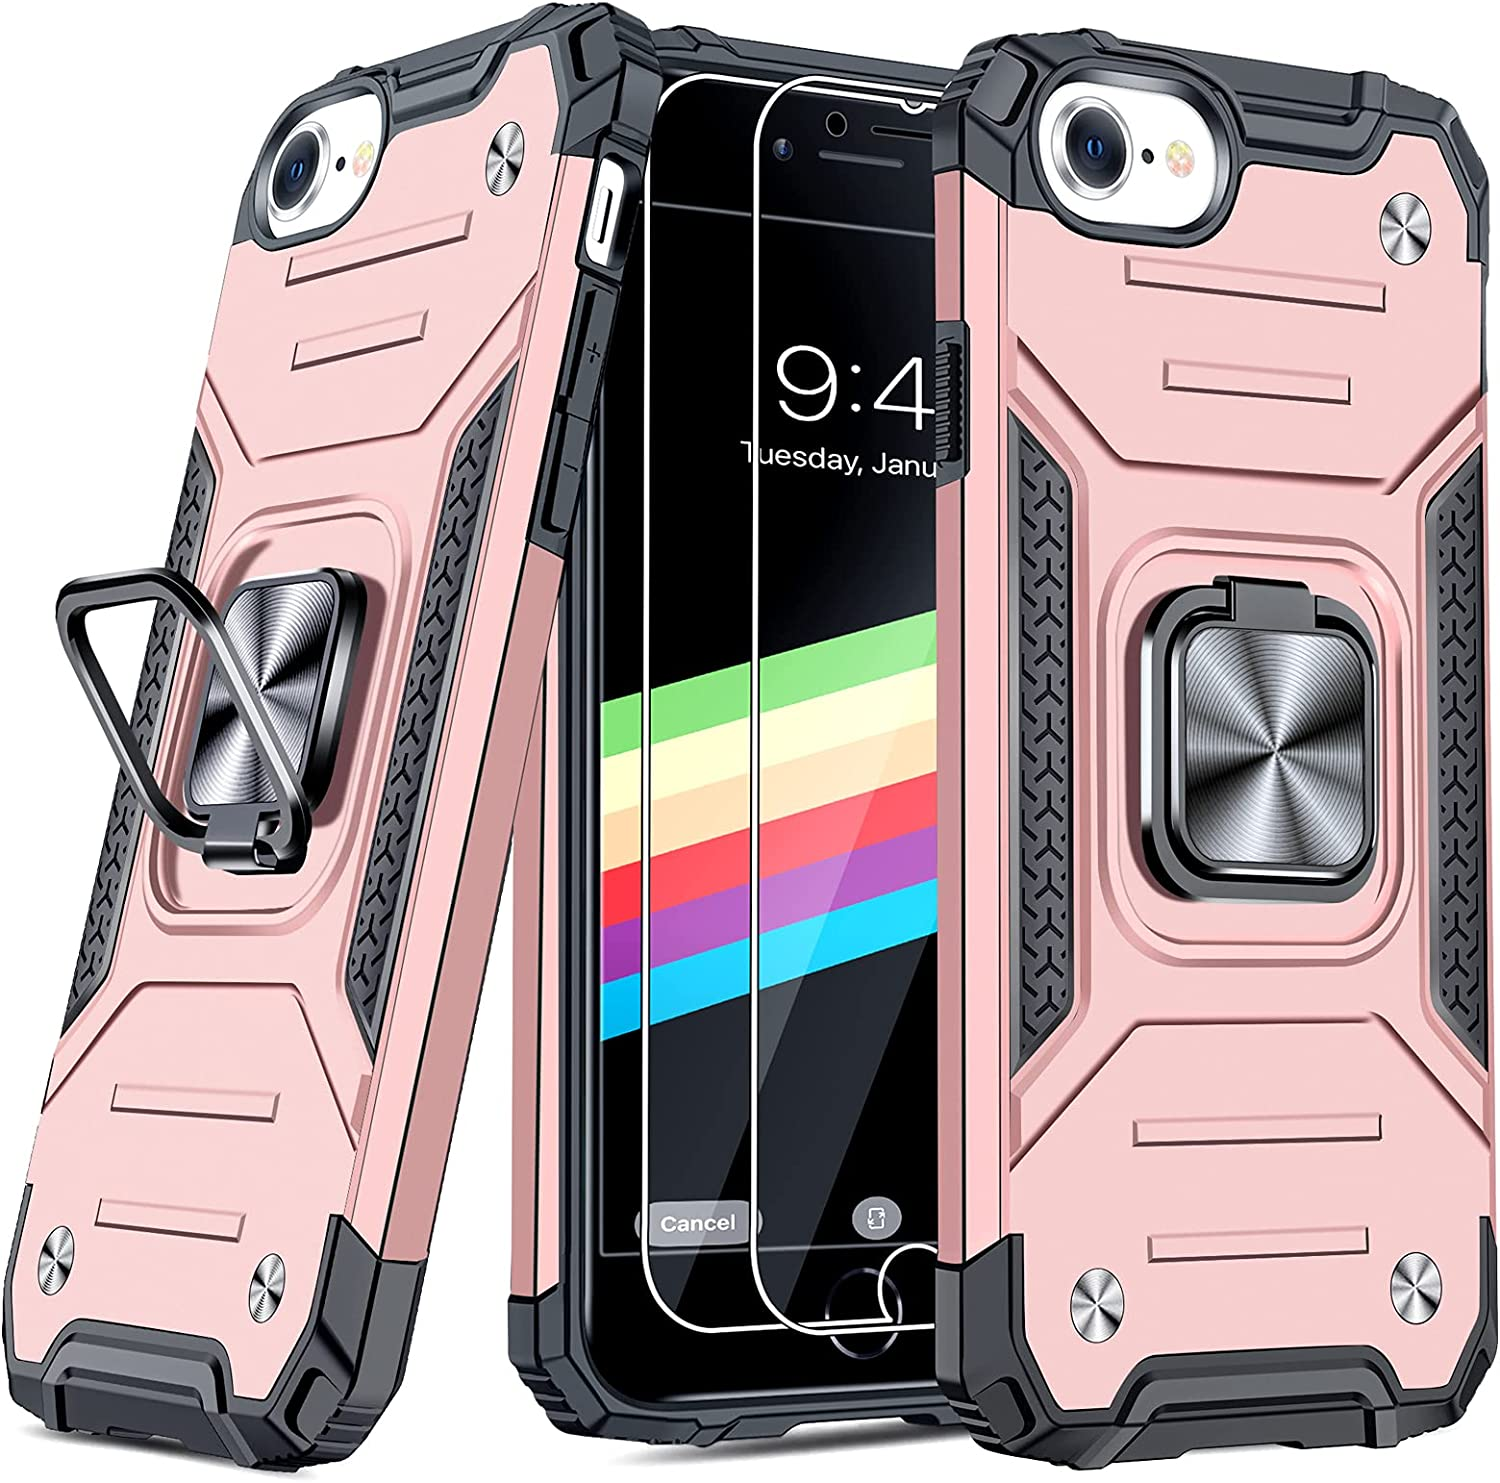 """JAME Case for iPhone SE 2020 Case with Screen Protector 2Pcs, for iPhone 8 Case, for iPhone 7 Case, for iPhone 6S/6 Case, Military-Grade Protection, with Ring Kickstand Shockproof Case 4.7"""" Rose-Gold"""